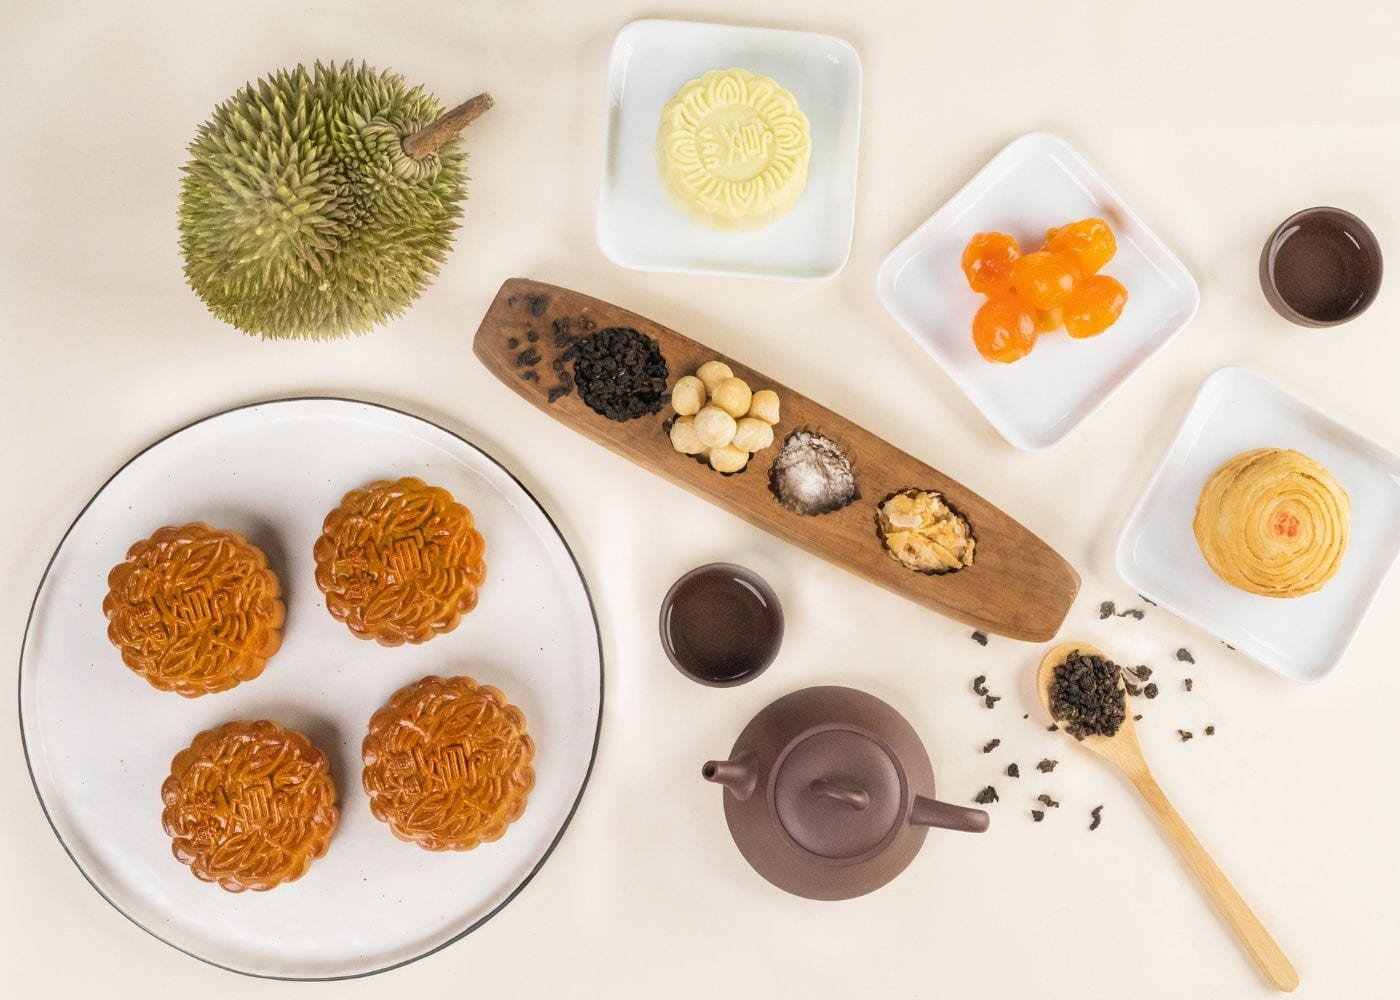 Must-try mooncakes for Mid-Autumn festival